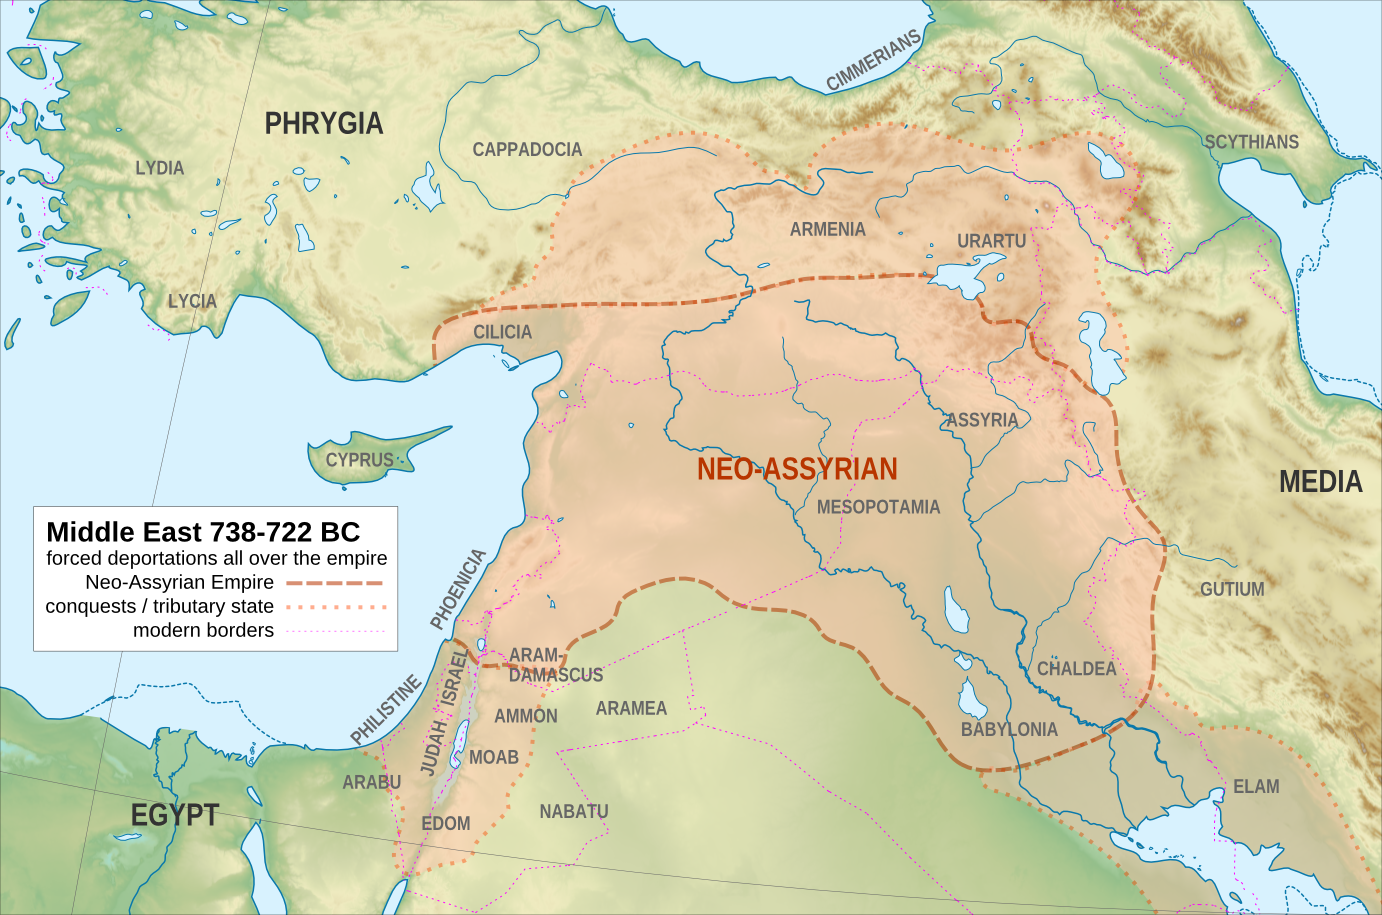 Neo-Assyrian Empire in 738-722BCE